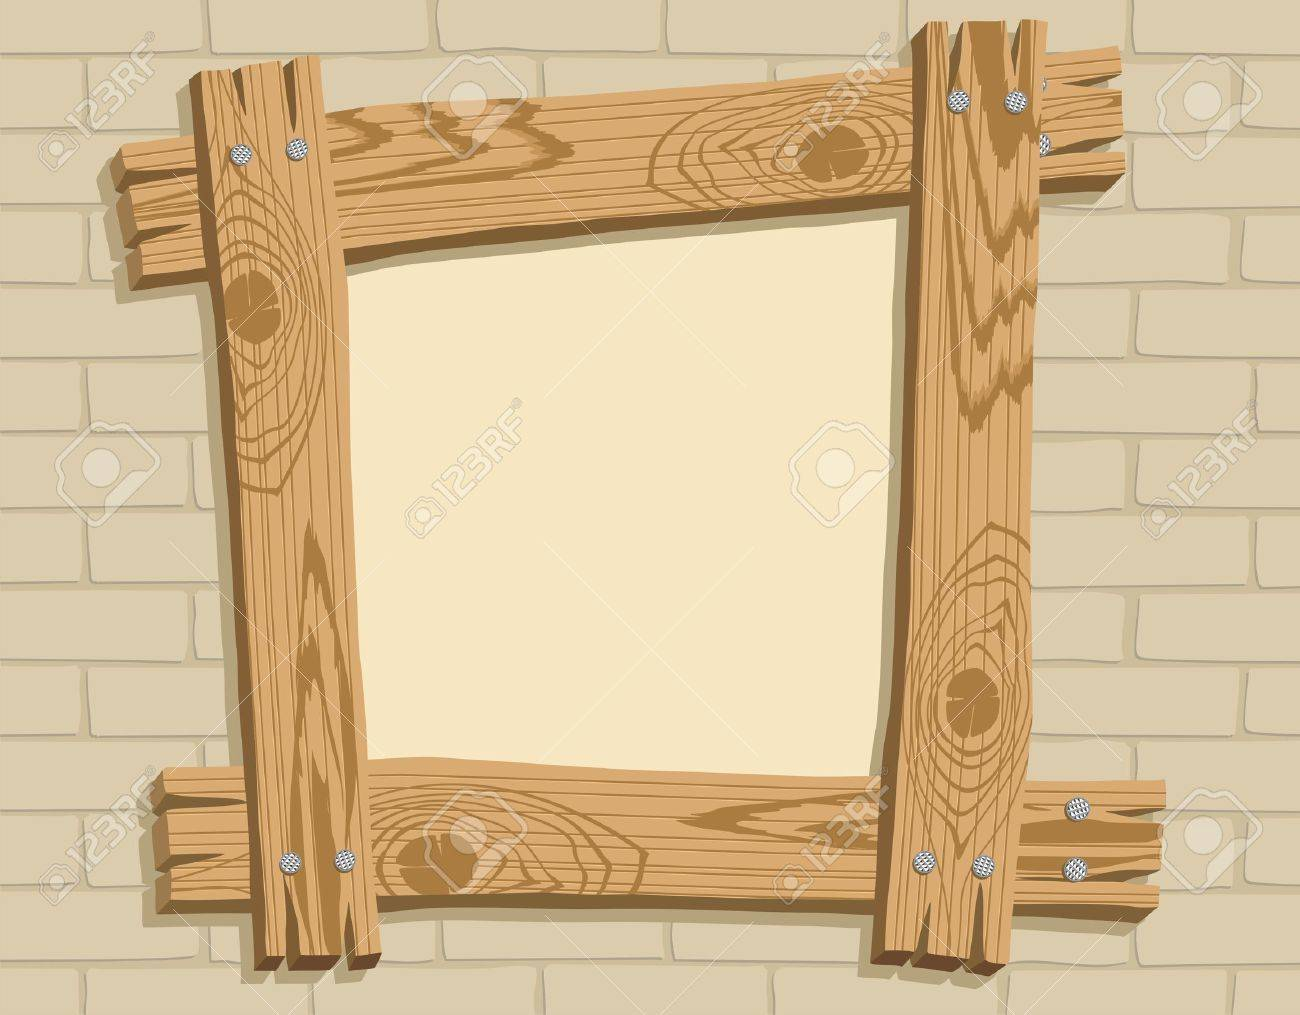 Frame of wooden boards against a backdrop of brickwall, vector illustration Stock Vector - 5545240